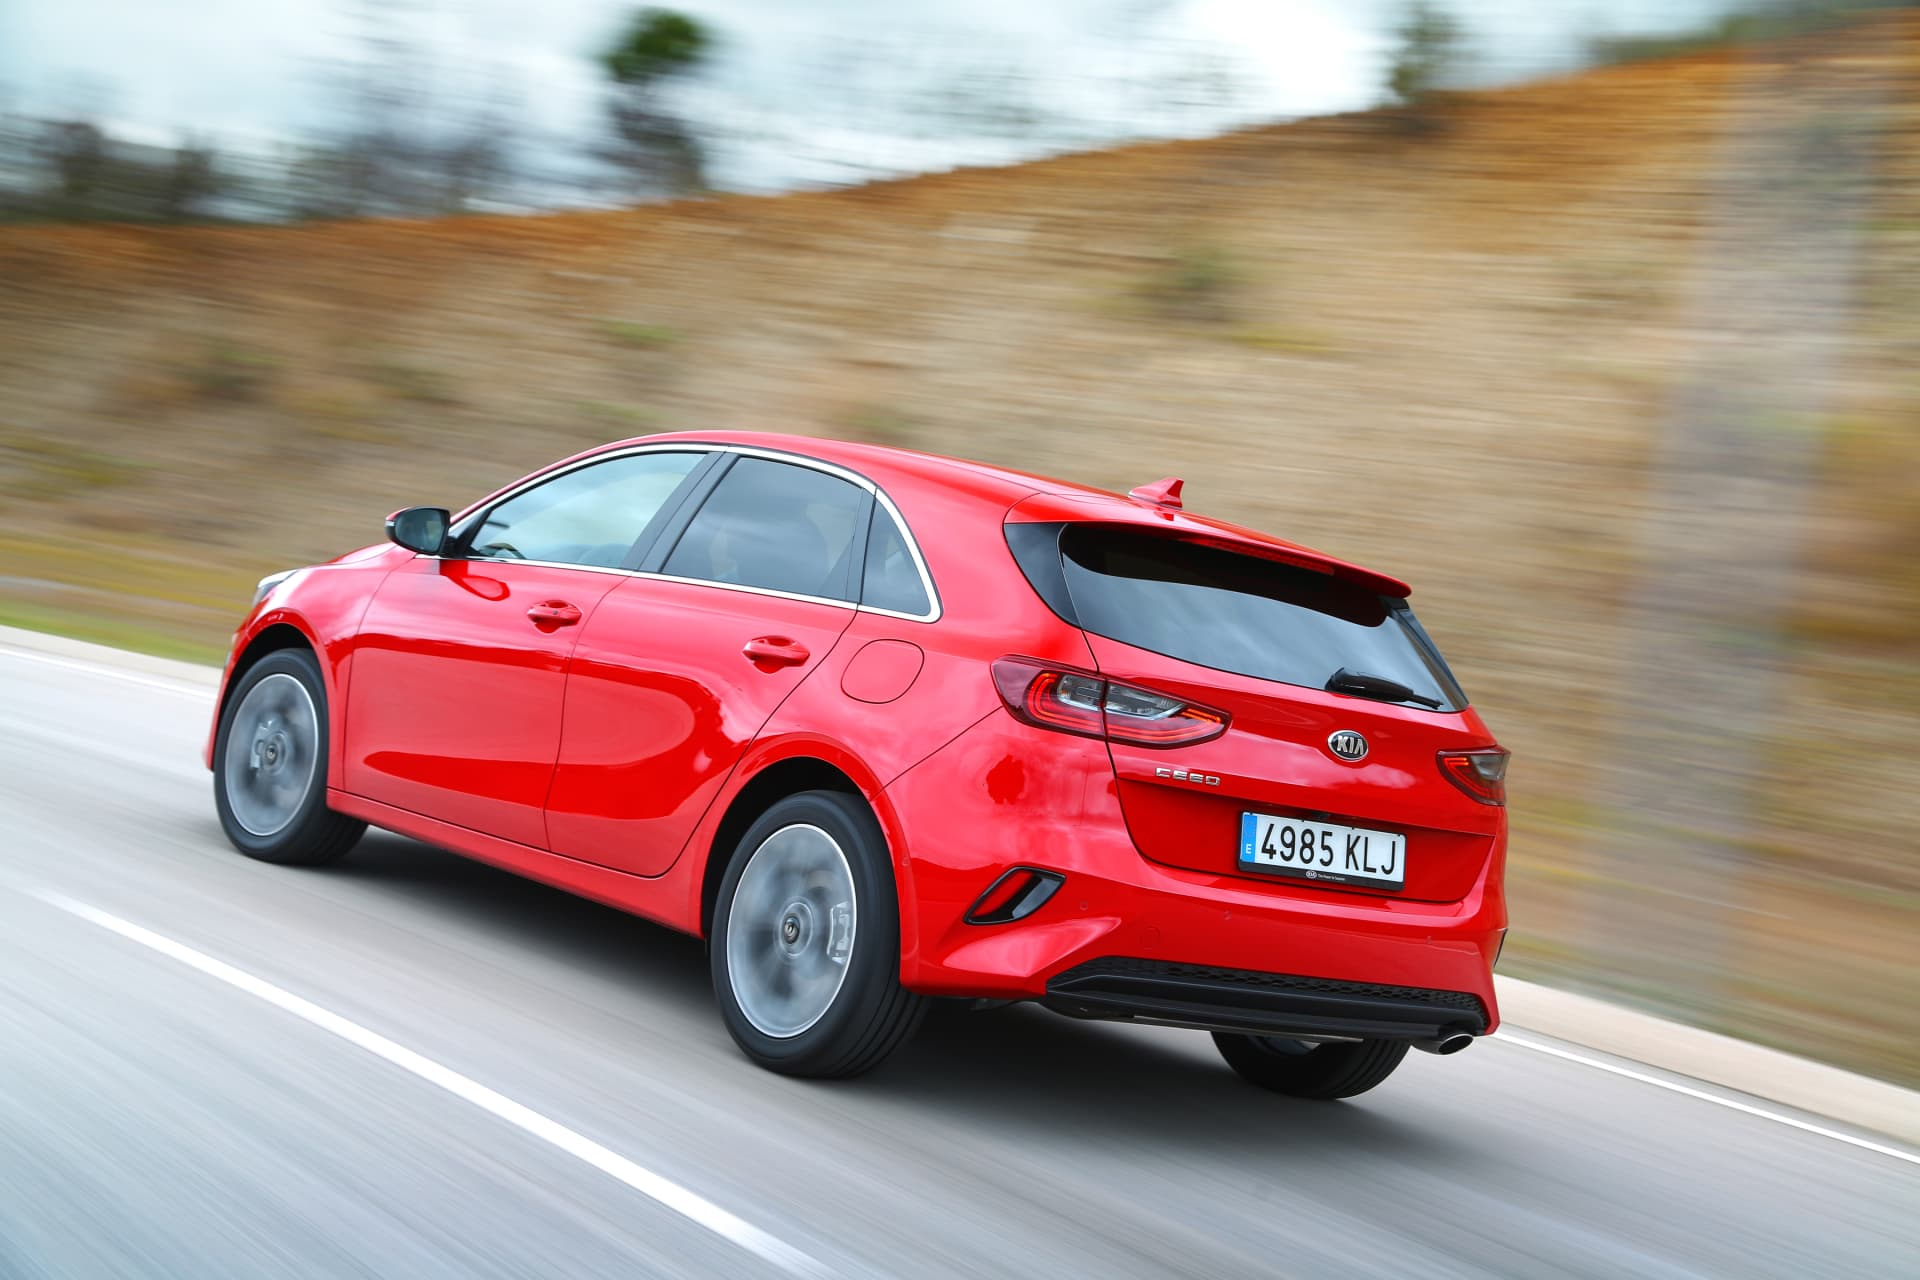 Kia Ceed 1 4 T Gdi 7 Dct Transmission 140hp Track Red 15